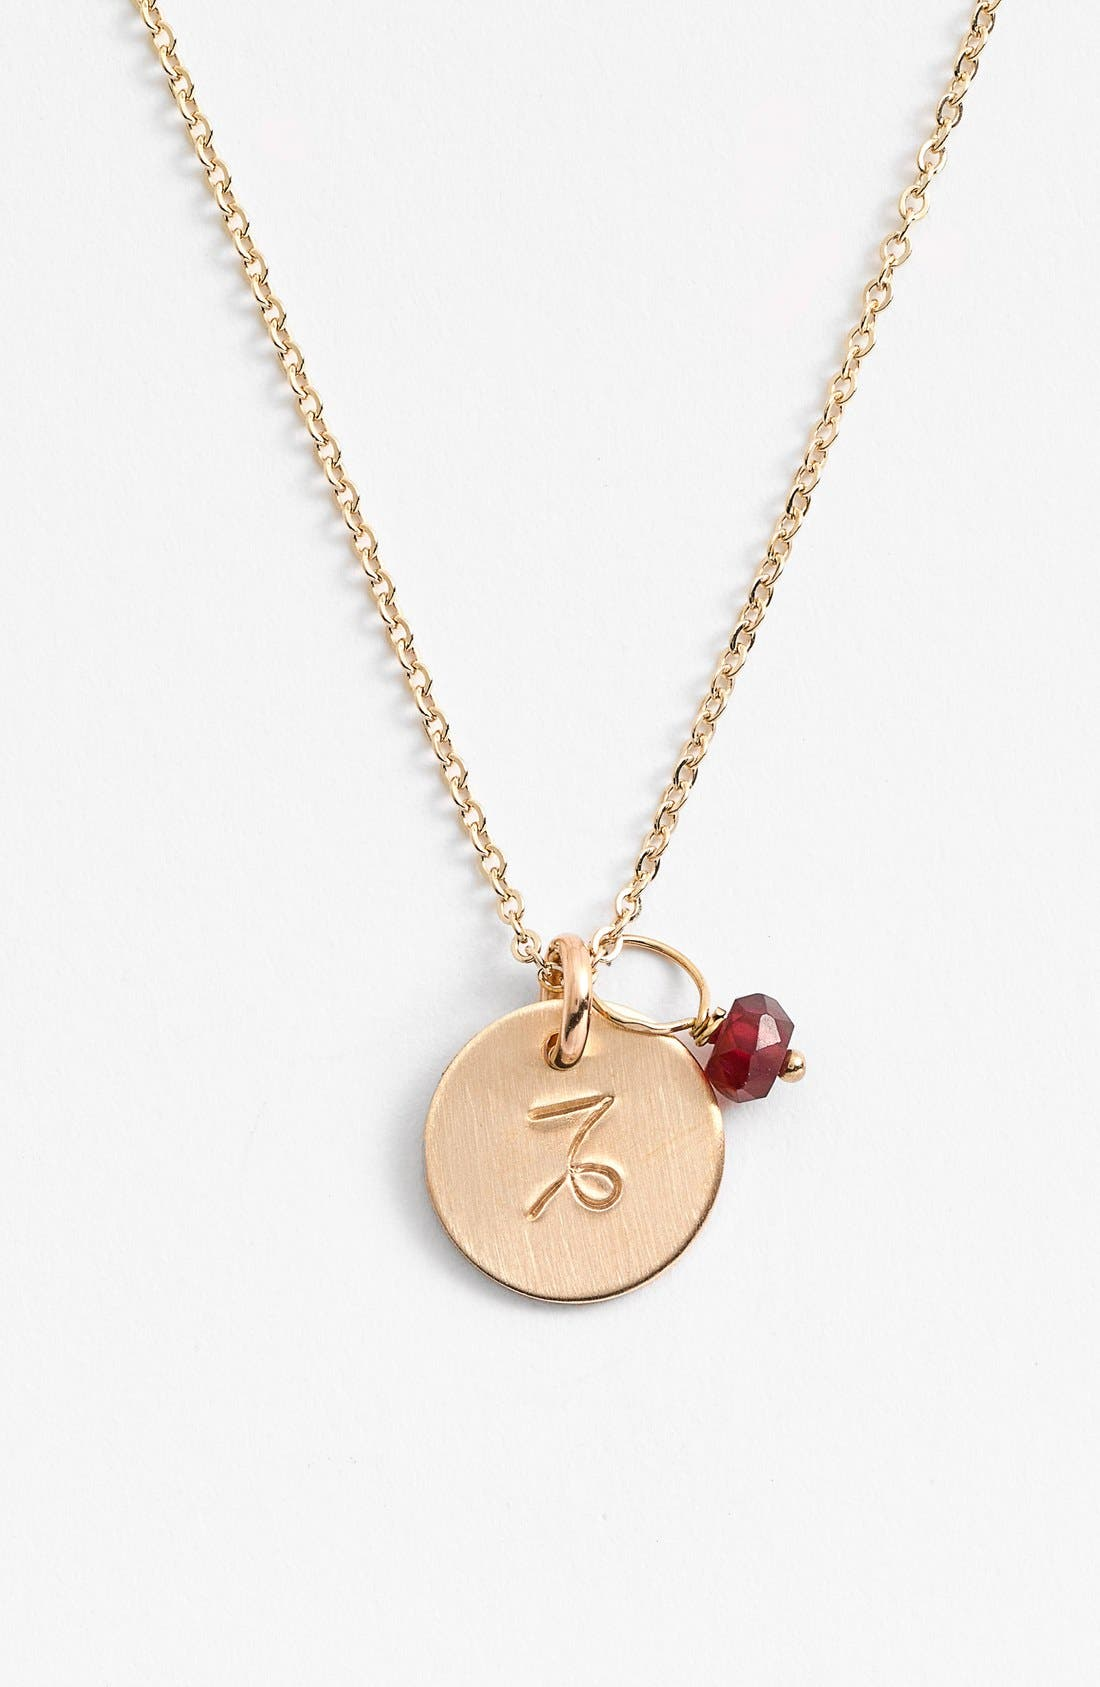 14k-Gold Fill & Semiprecious Birthstone Zodiac Mini Disc Necklace,                             Main thumbnail 1, color,                             CAPRICORN